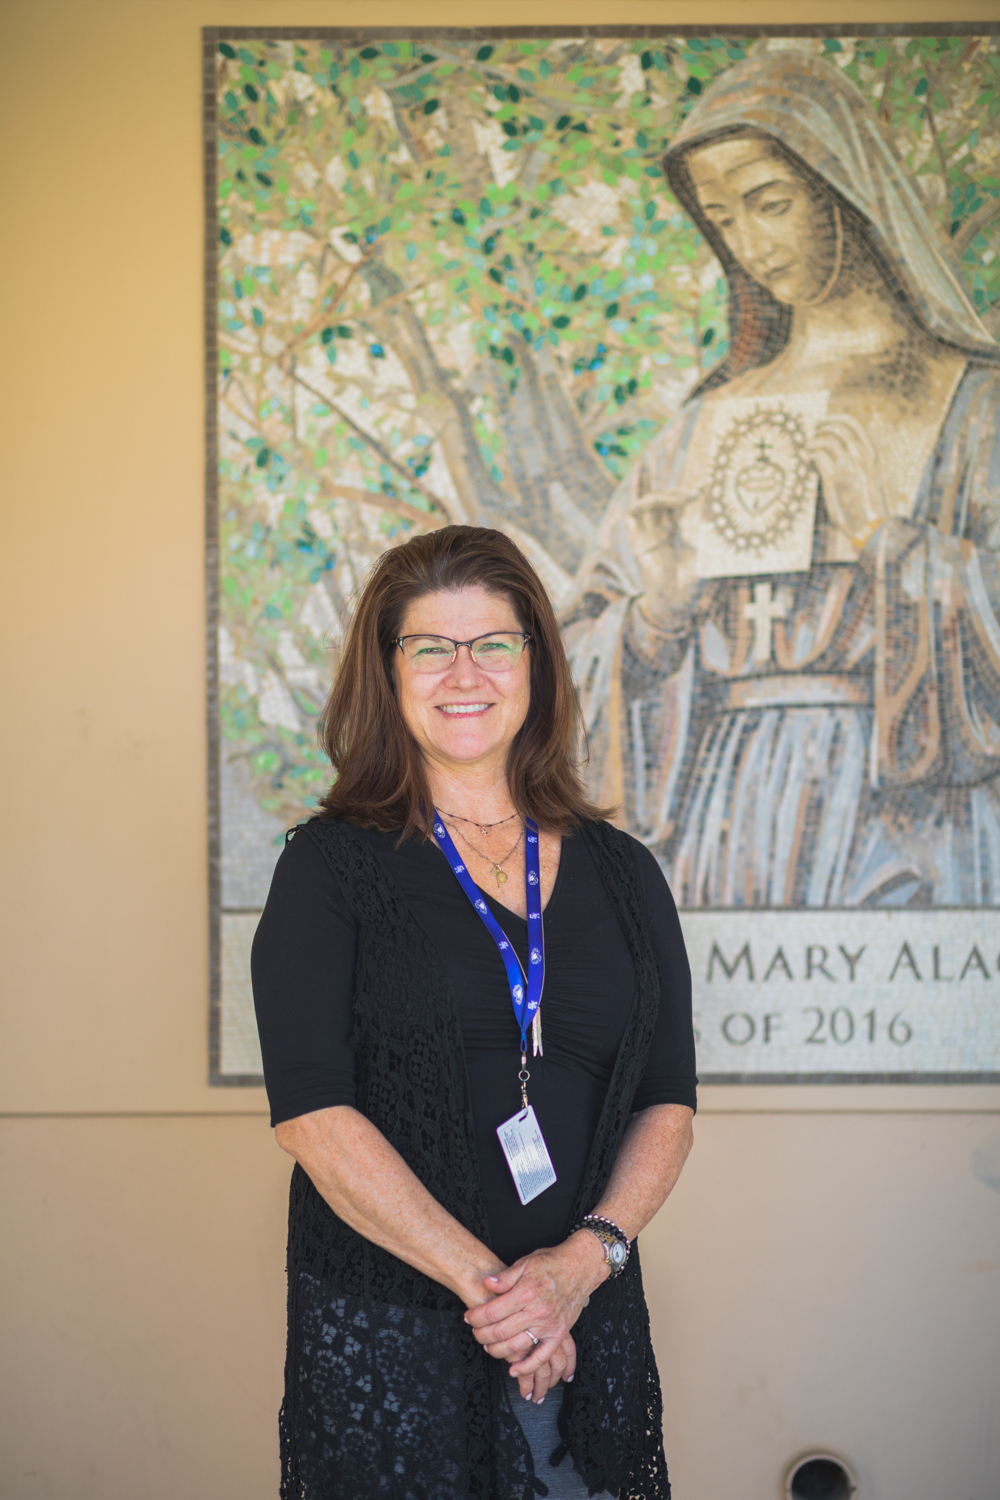 Continuing a long history of Catholic education, Principal Wood steps onto campus with a fresh perspective on student life.